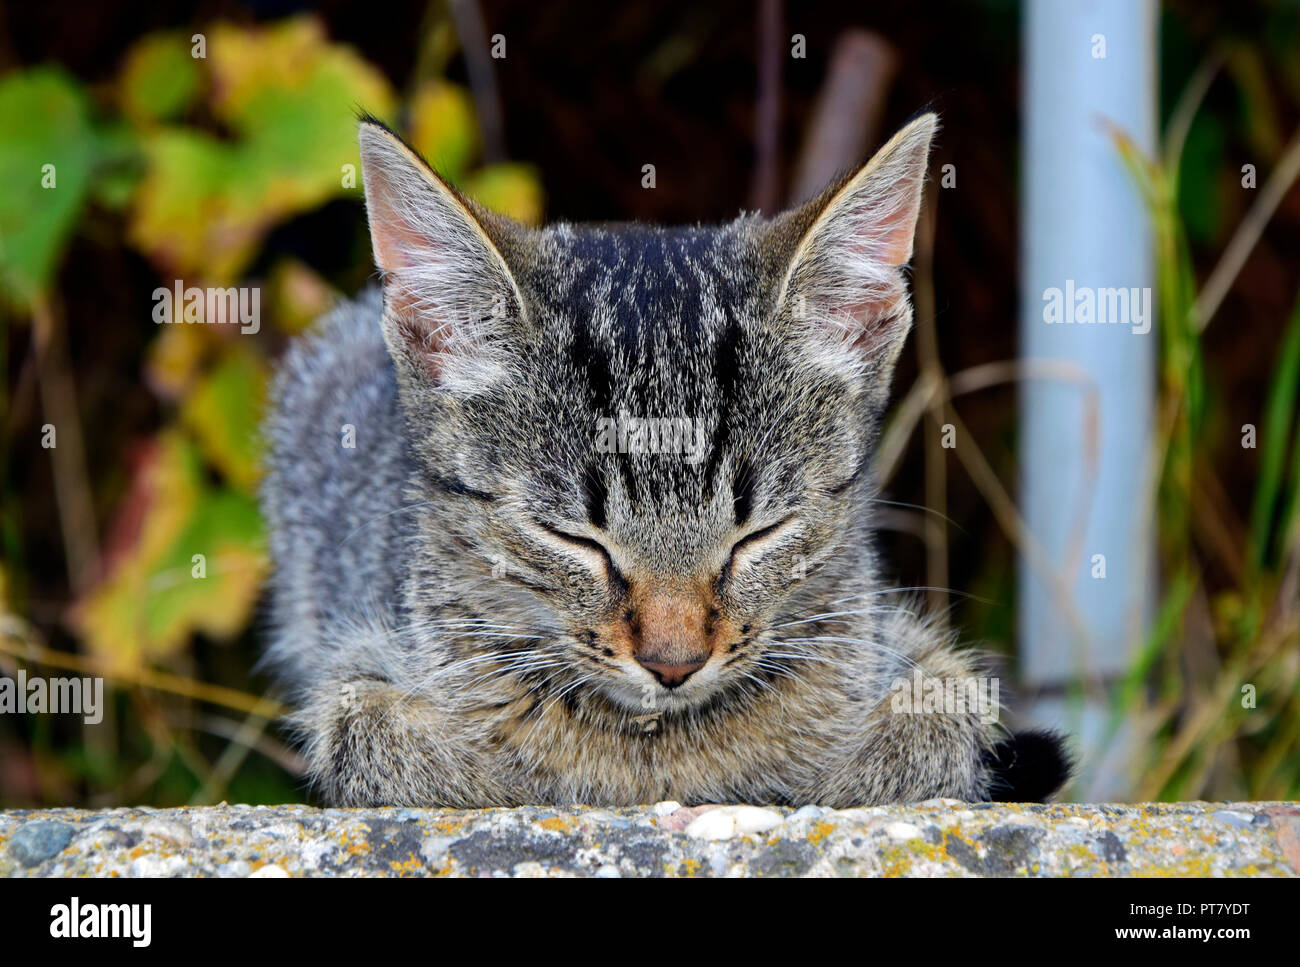 Frontal view portrait of a dark grey tabby kitten with brown nose dozing on a concrete slab with tucked in paws Stock Photo